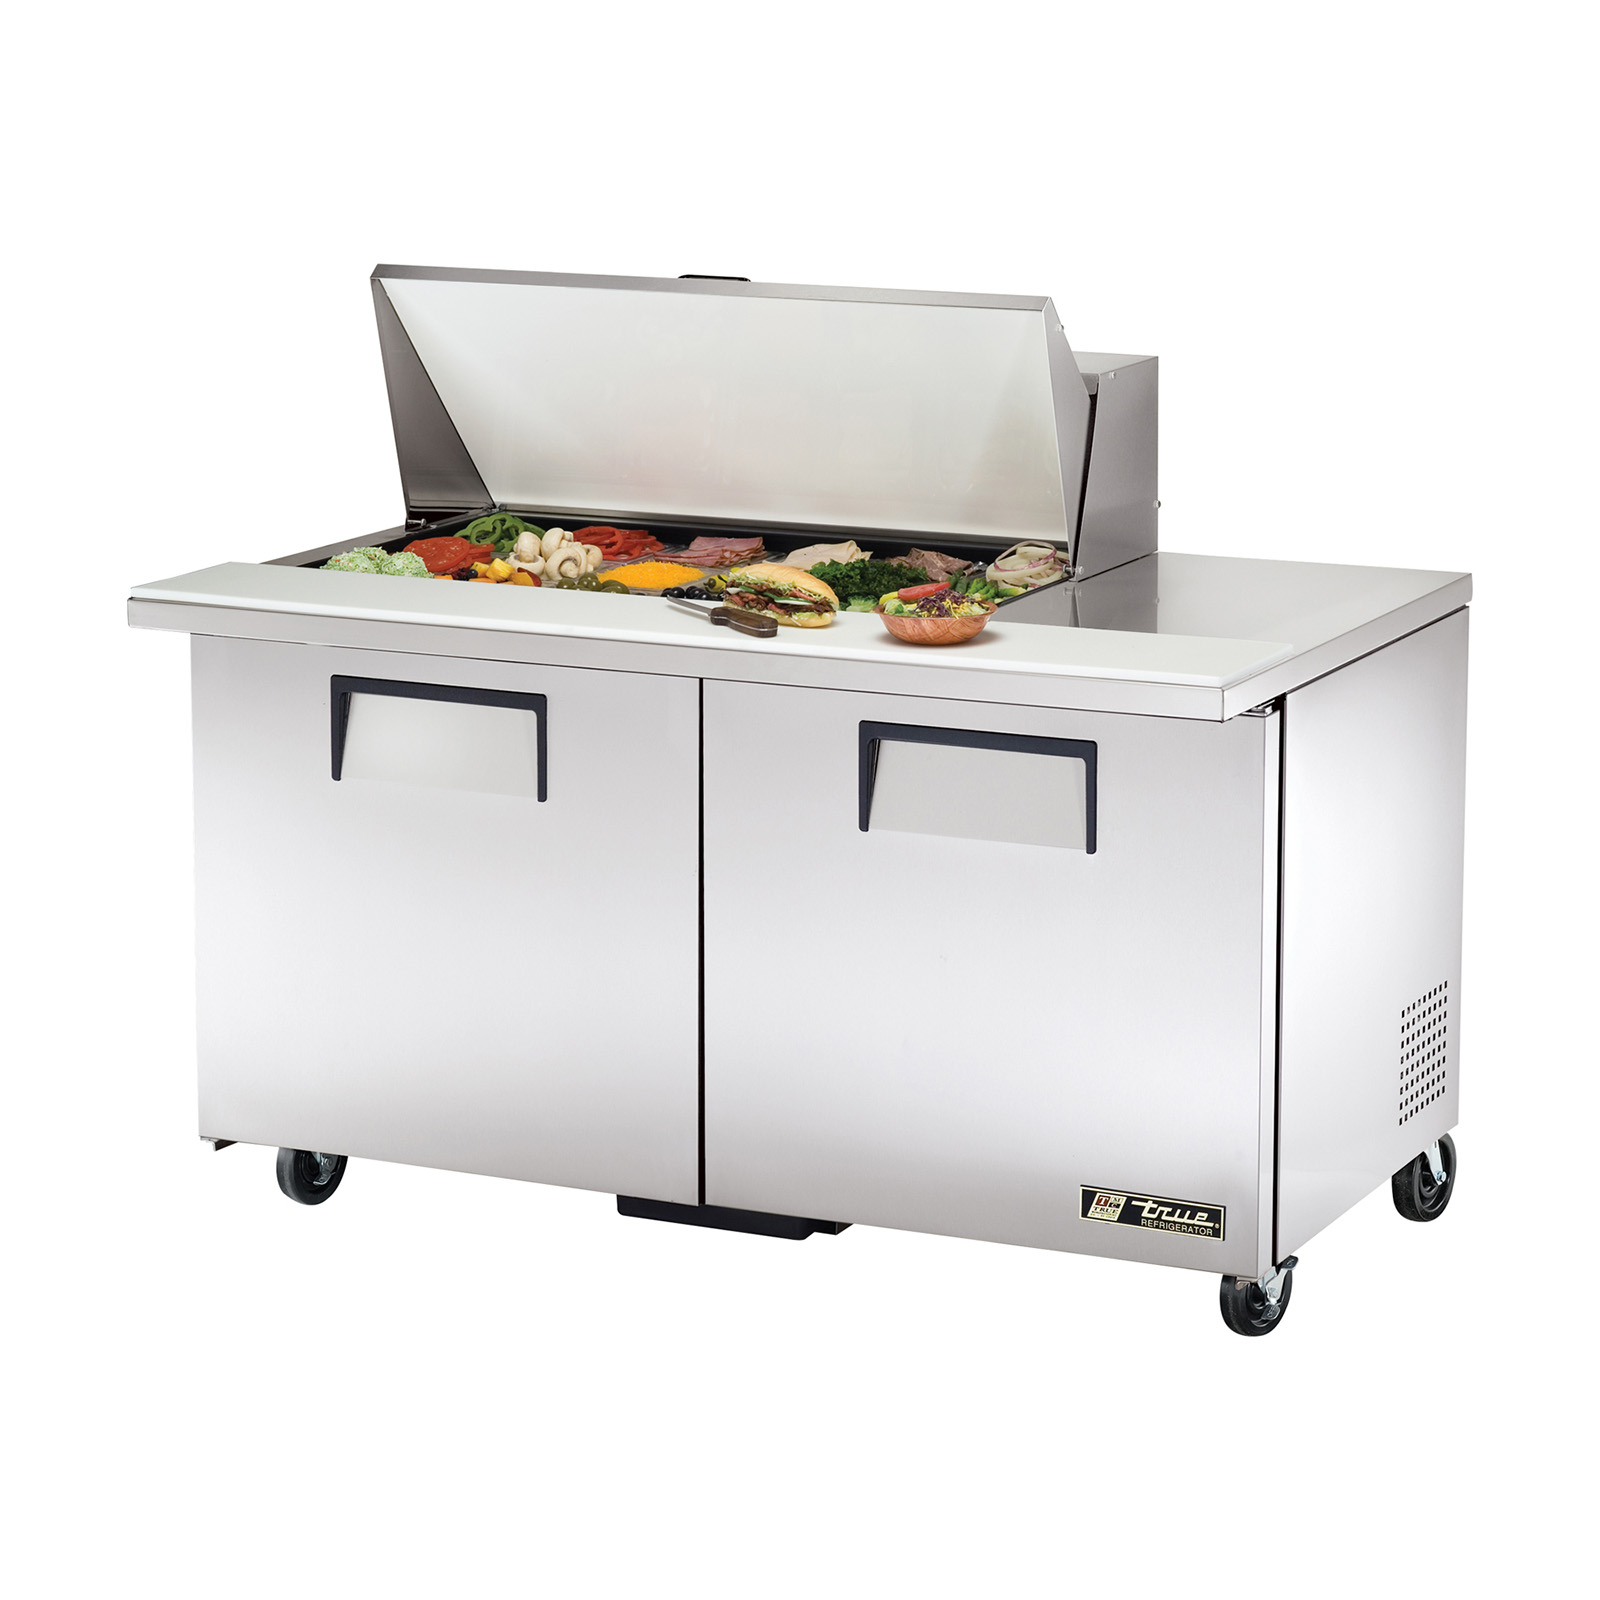 TSSU-60-18M-B True - Mega Top Sandwich/Salad Unit (18) 1/6 size (4